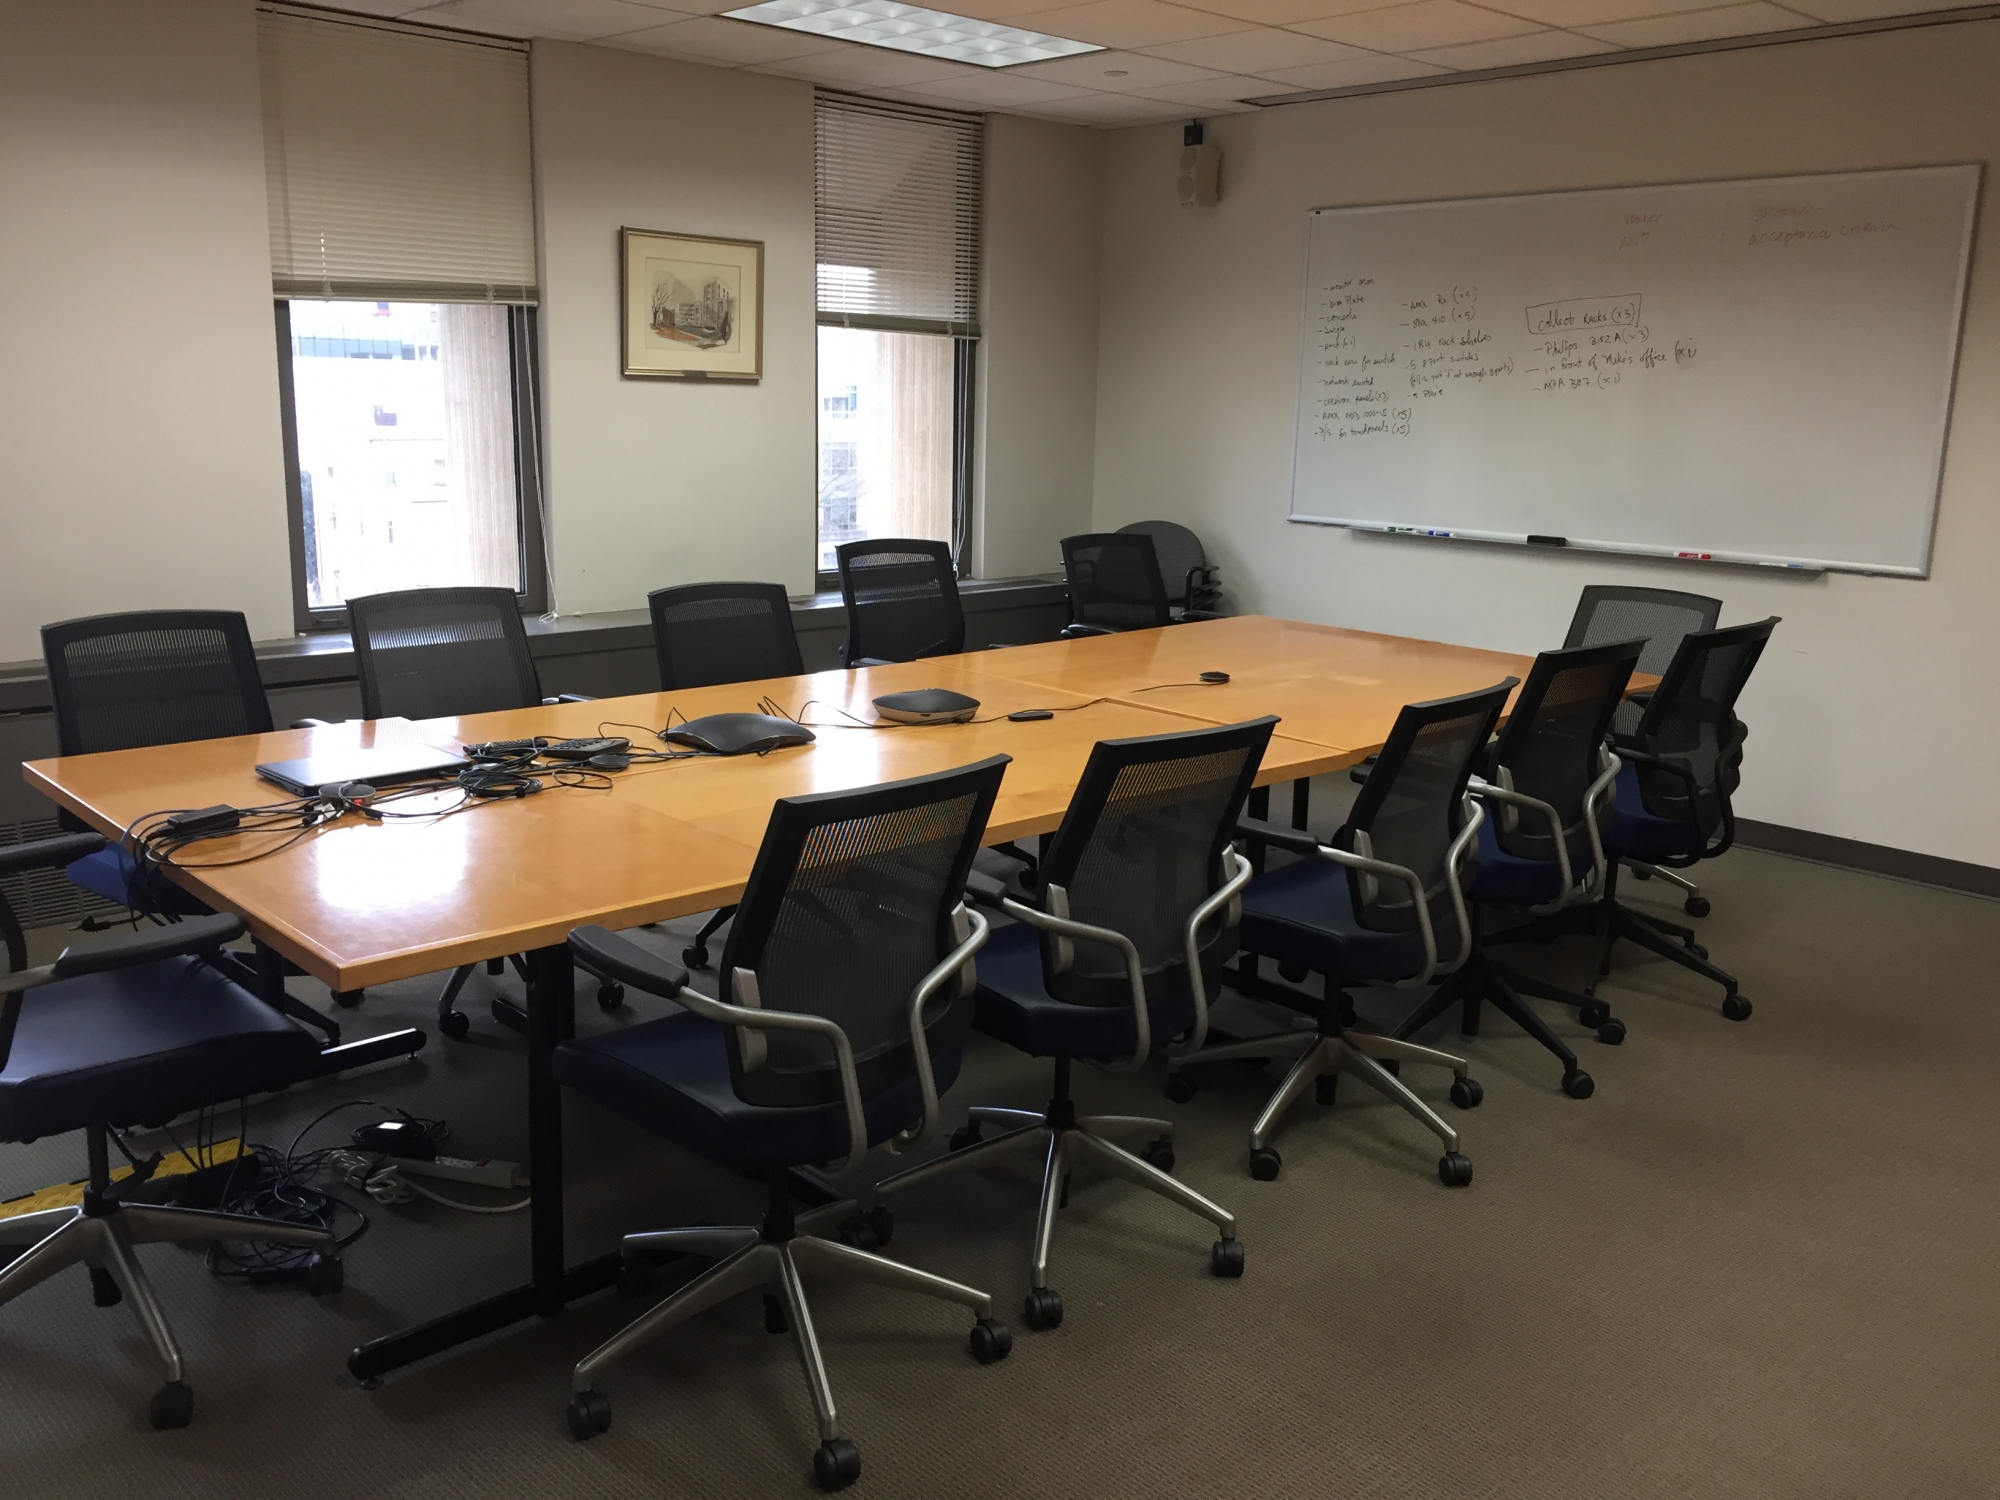 Gelman Library Conference Room 605A Capacity 14 people